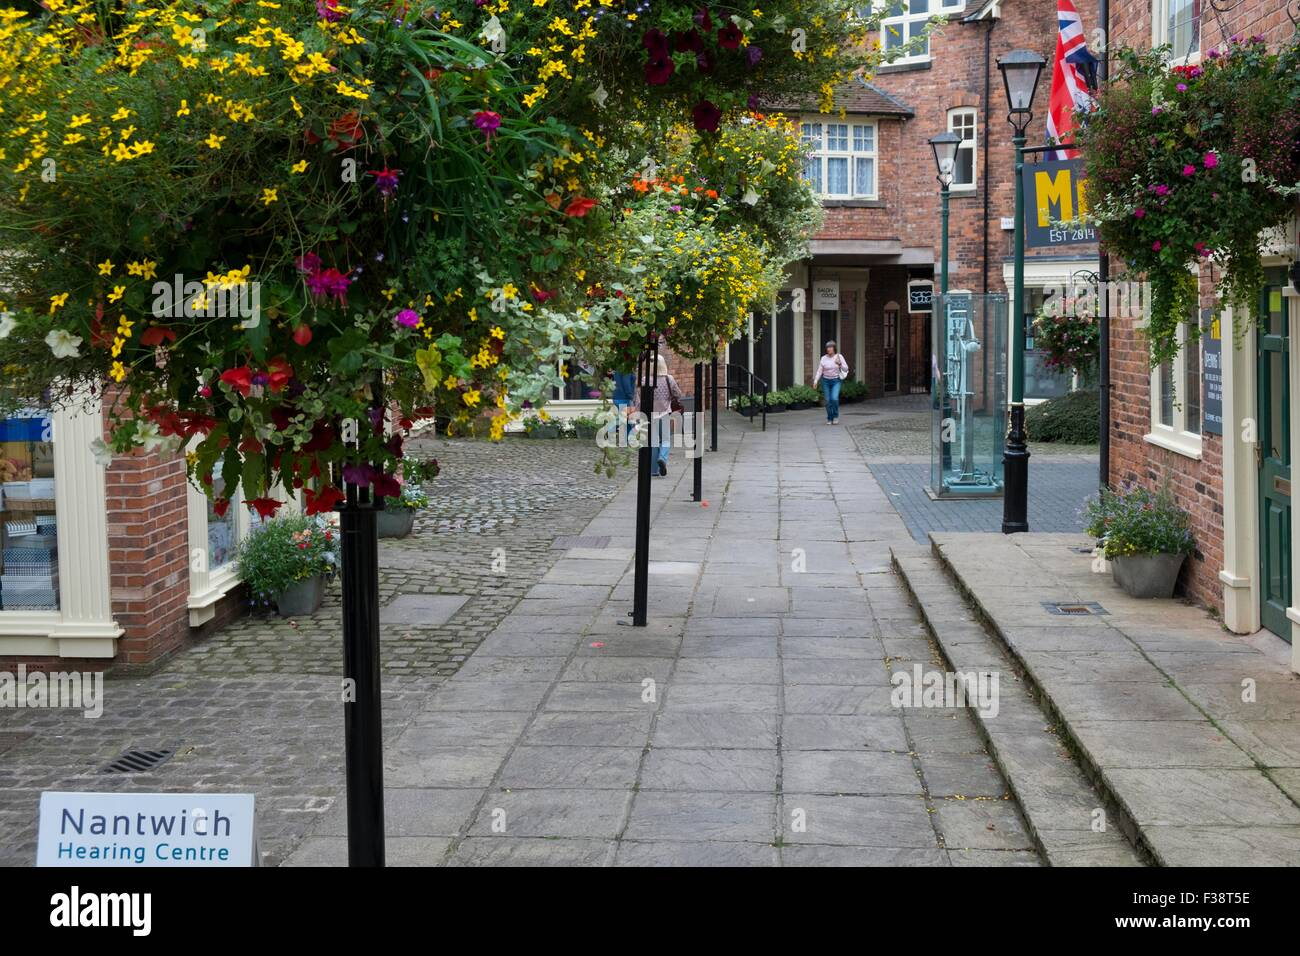 Town Centre hanging baskets, Nantwich. - Stock Image